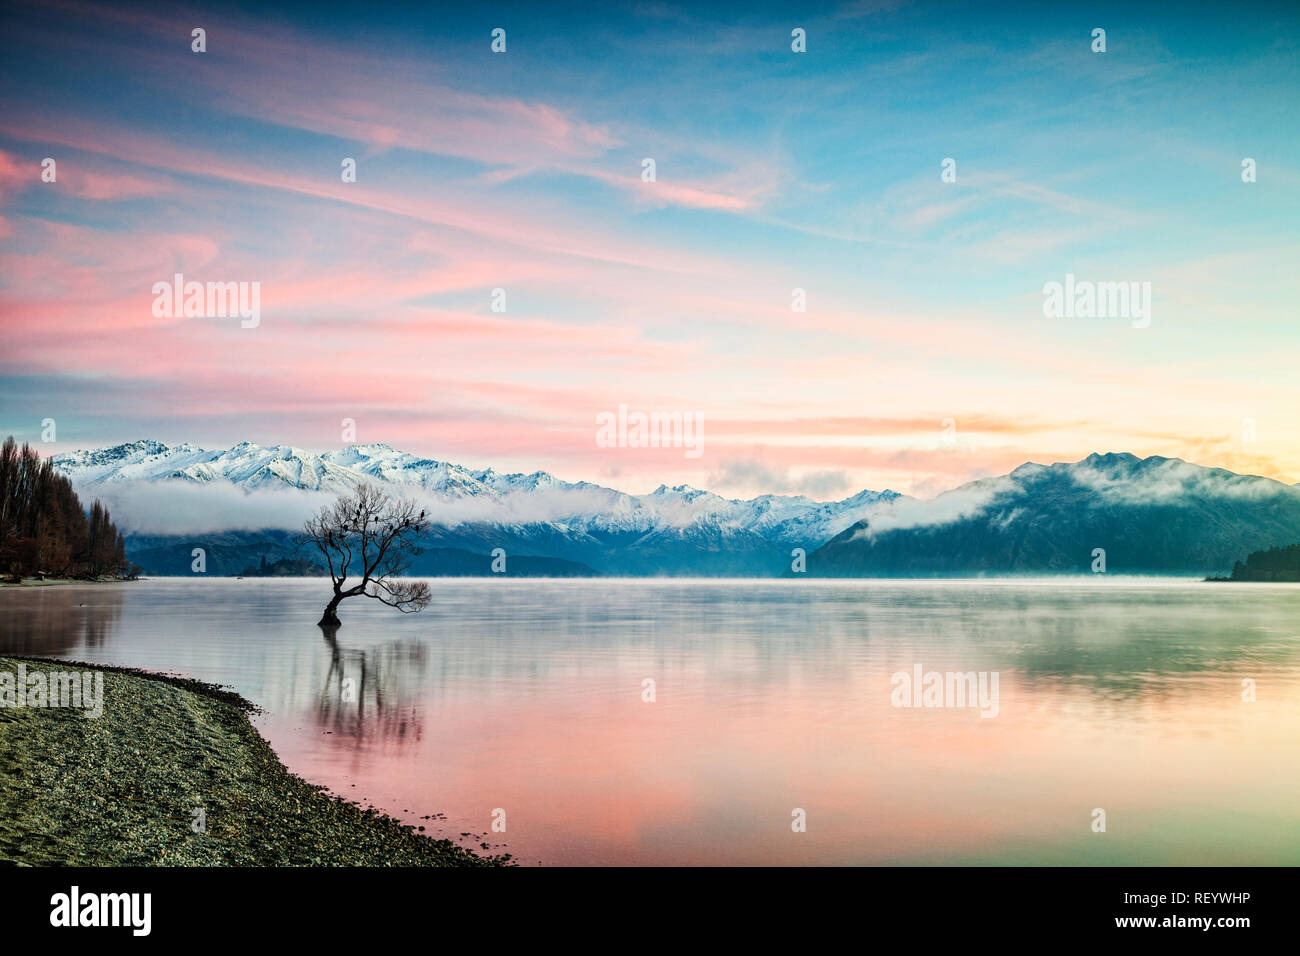 Winter at Lake Wanaka, Otago, New Zealand, with birds roosting in the single tree and mist rising from the water. Stock Photo